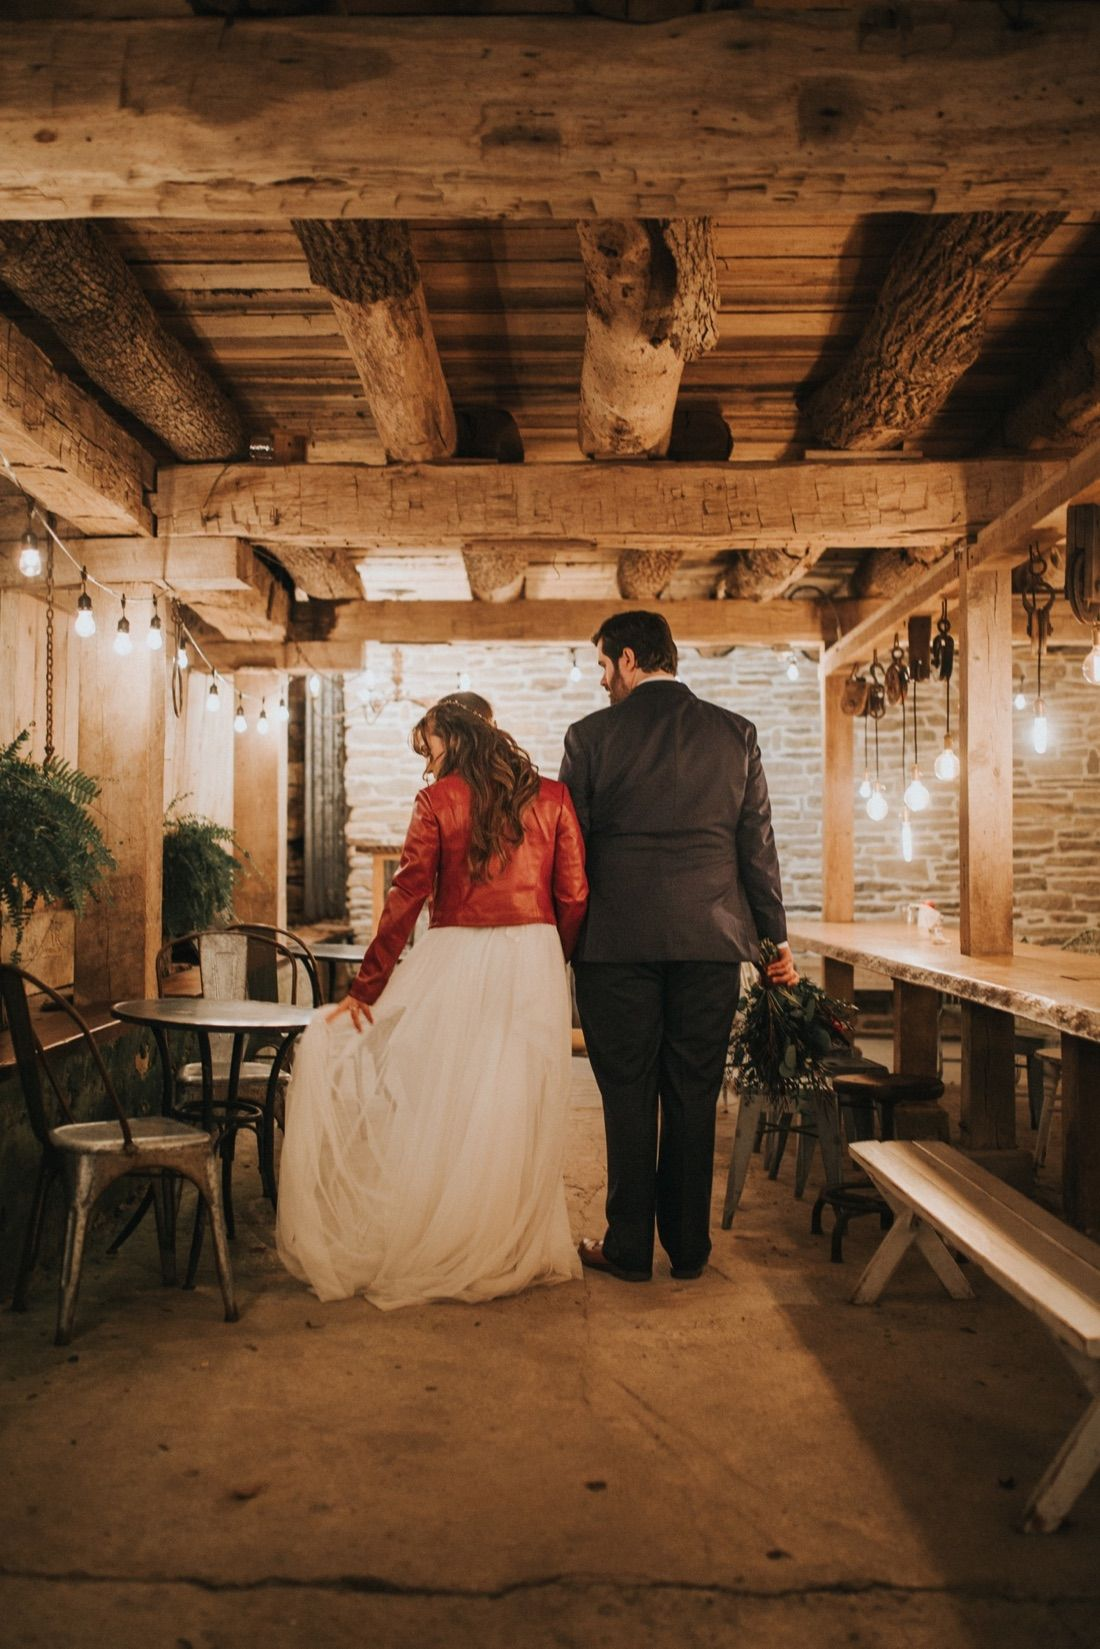 Wedding in the Woods   Canyon Run Ranch Wedding in 2020 ...